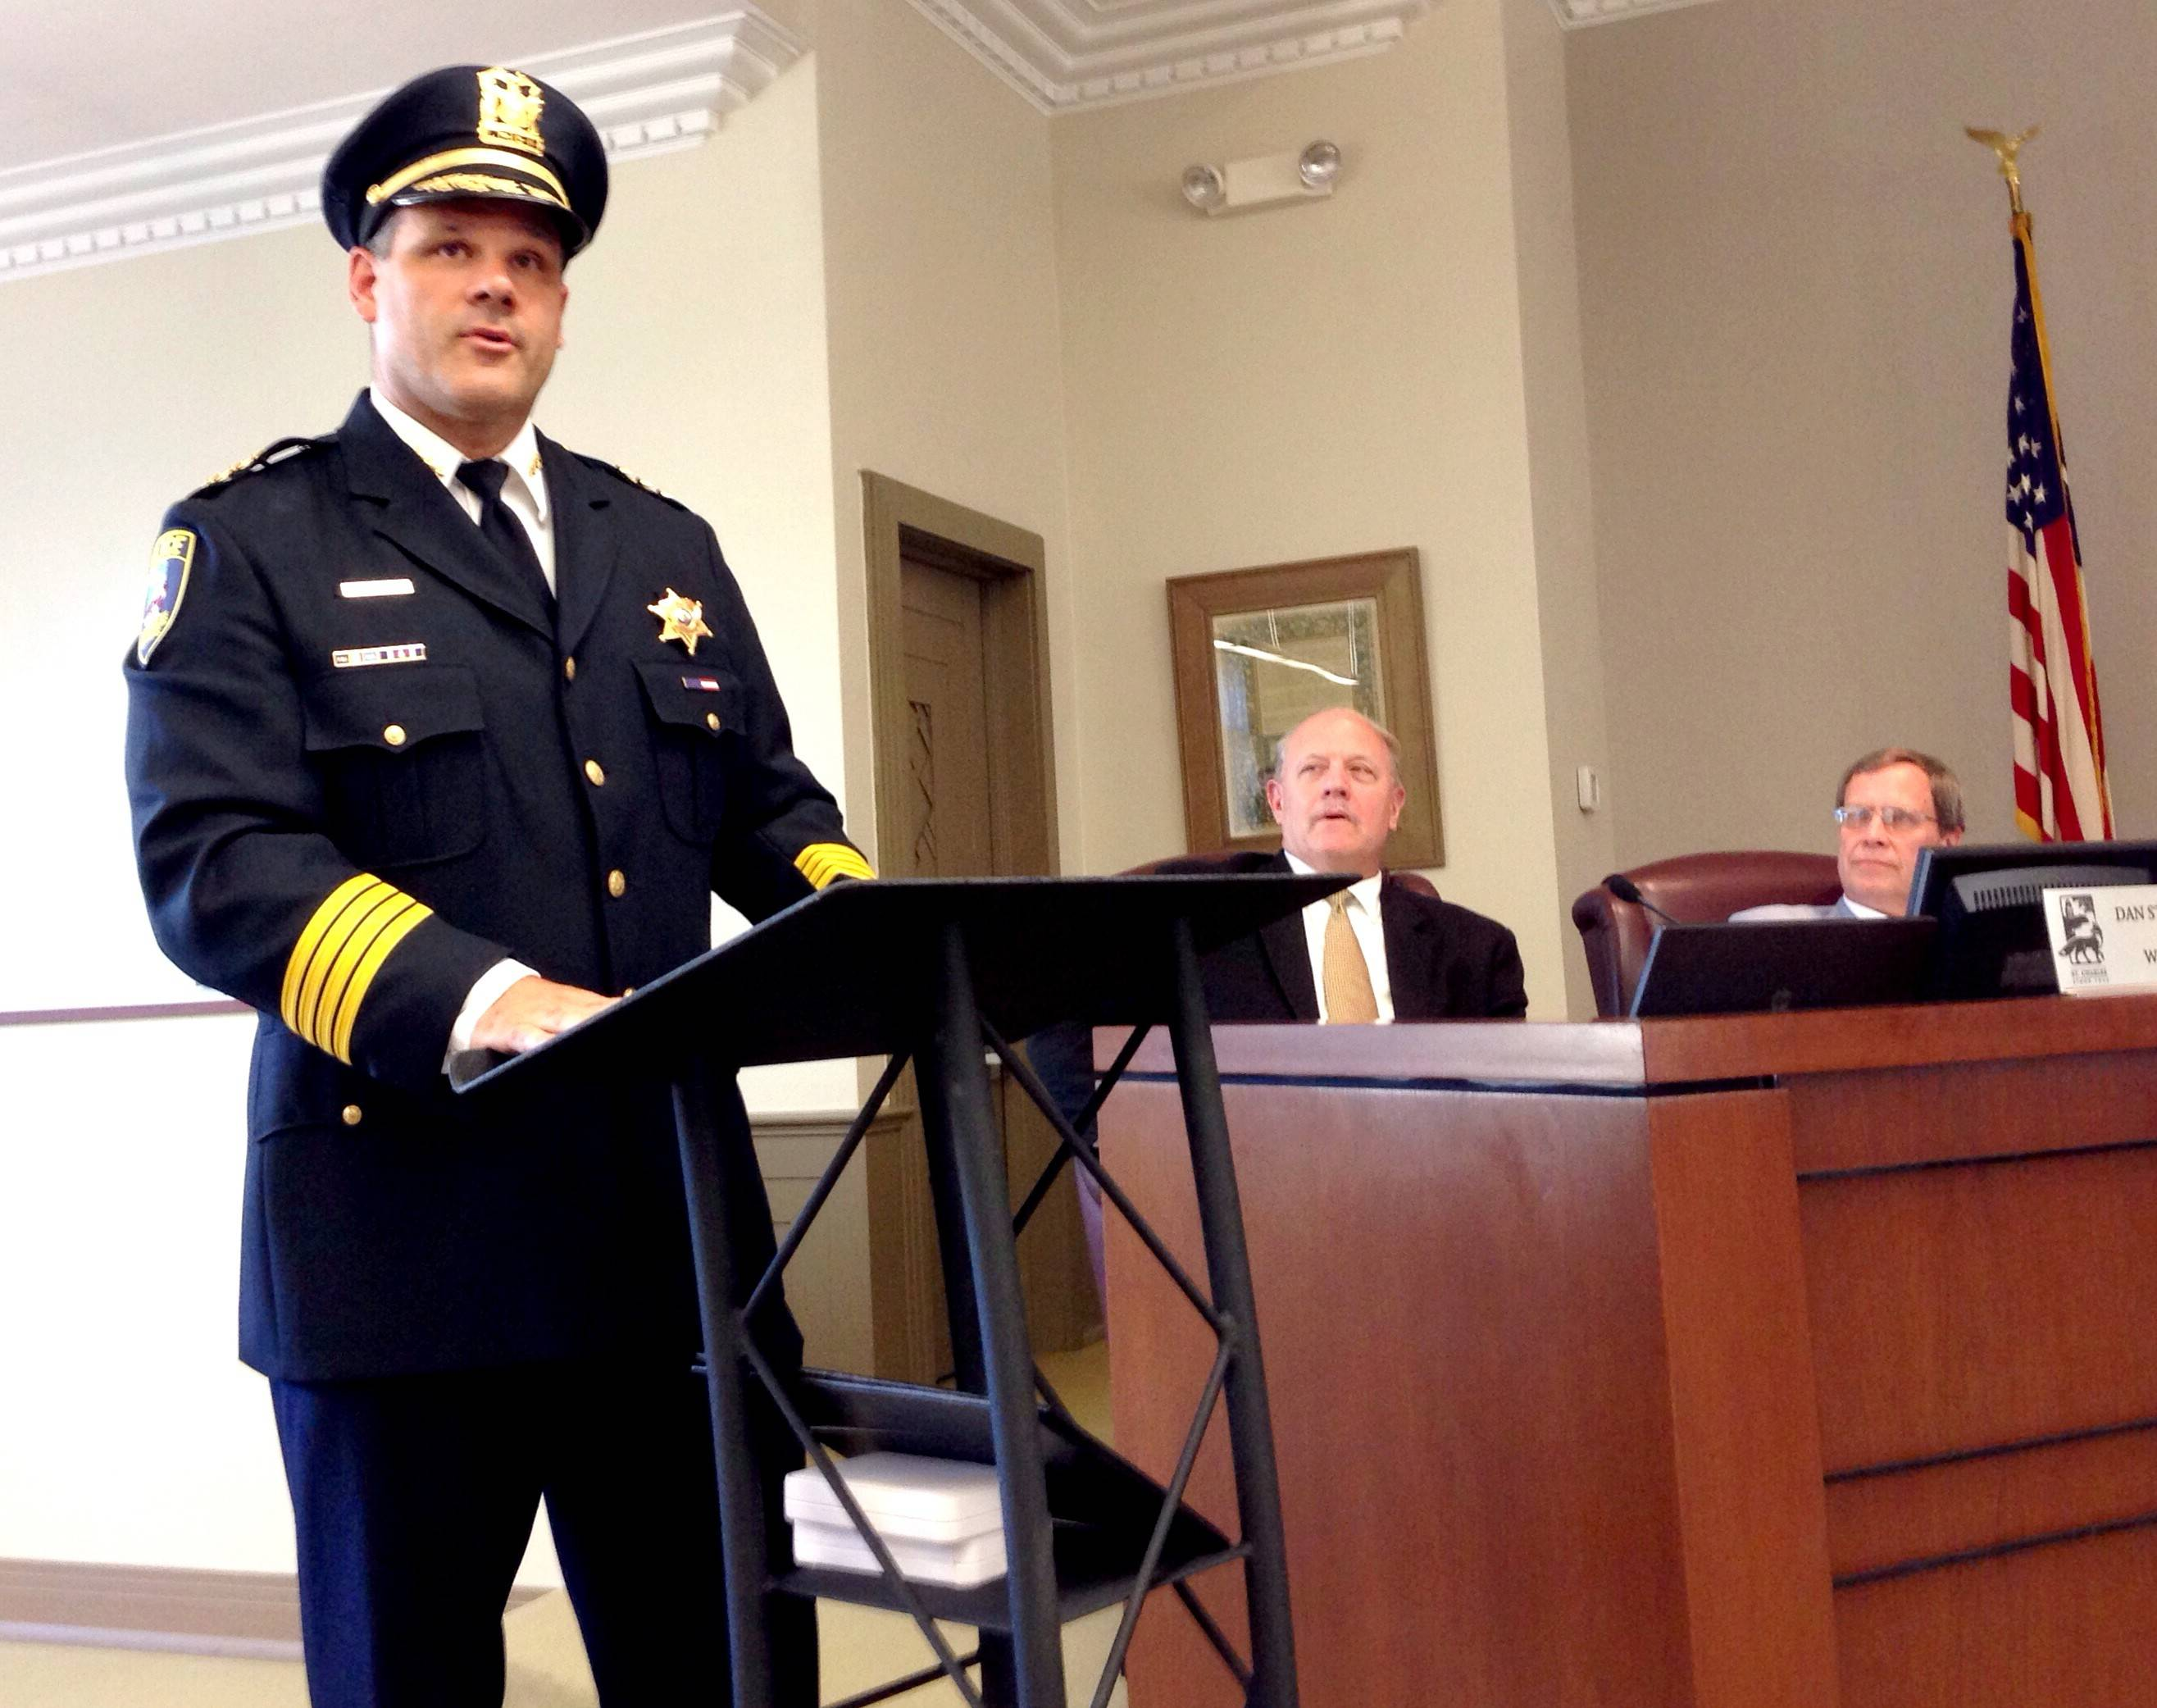 New St. Charles Police Chief James Keegan delivered his first address to the community Monday night as Aldermen Dan Stellato, center, and Ron Silkaitis, right, looked on.